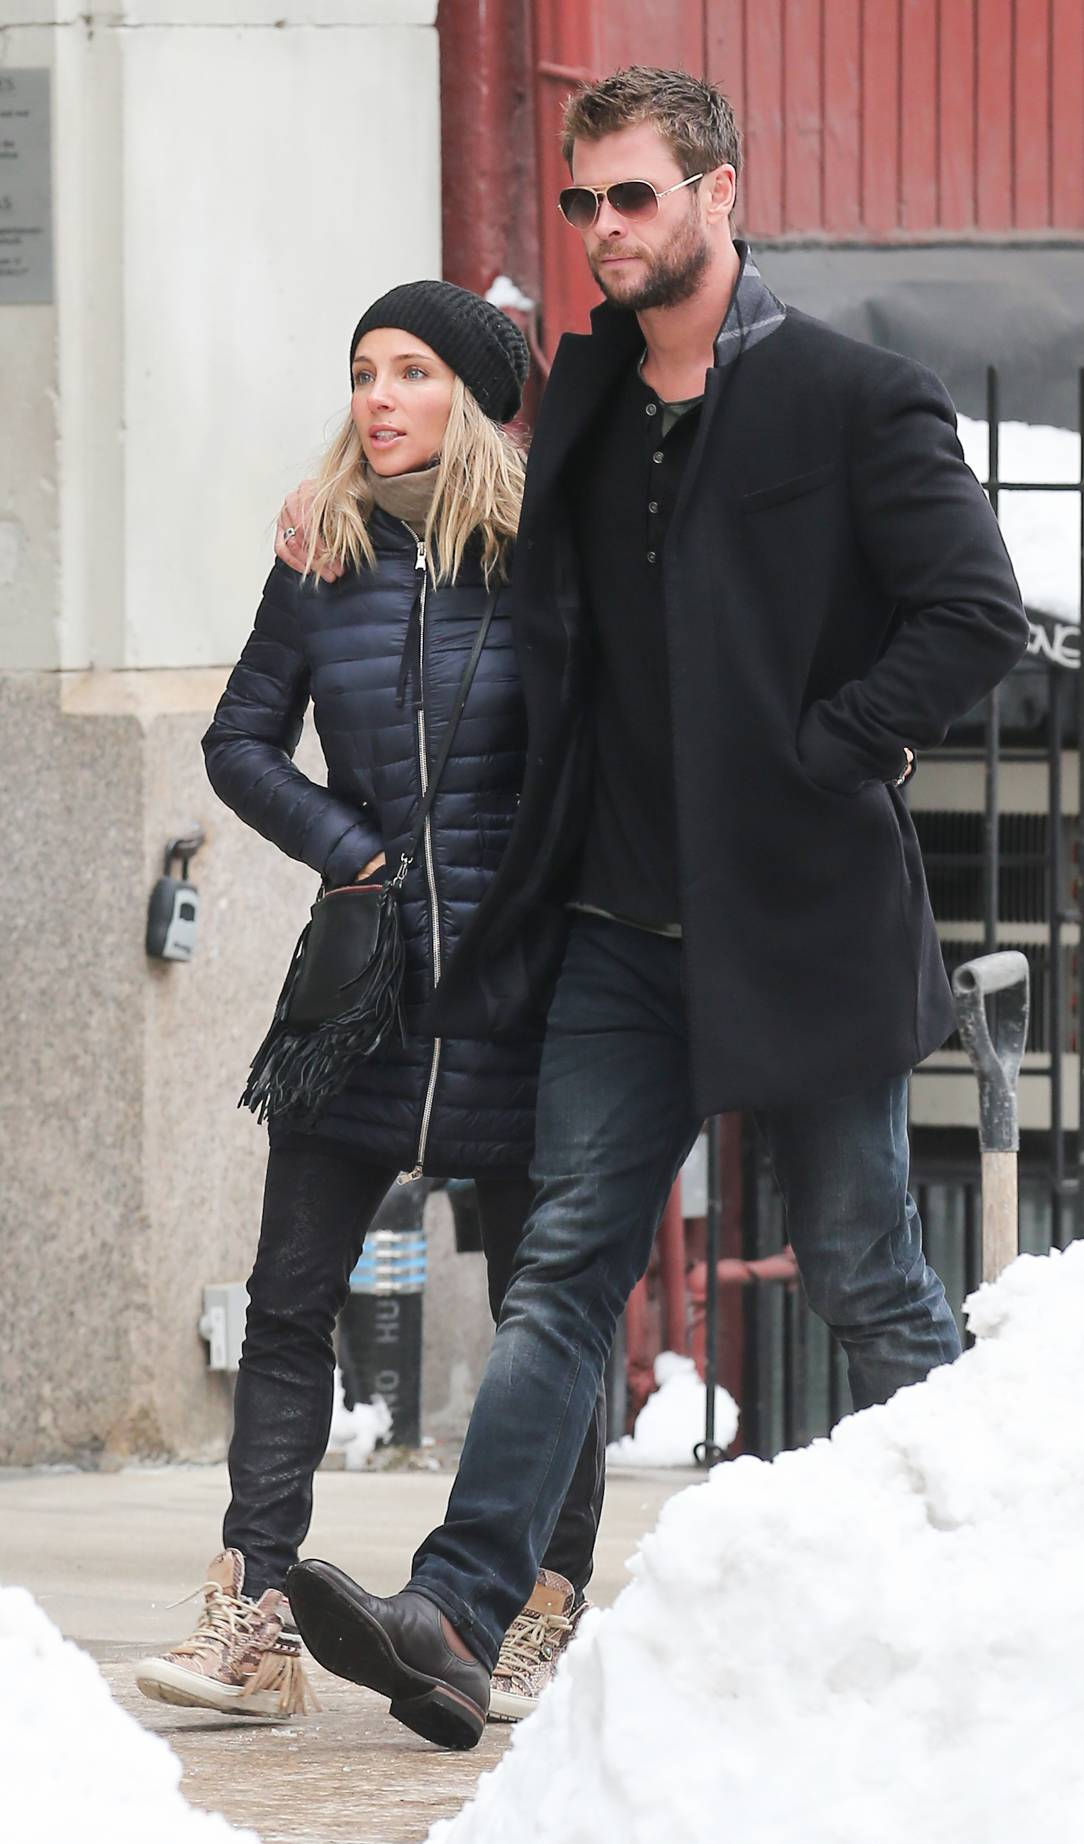 Chris Hemsworth and Elsa Pataky Romantic Stroll in NYC-4